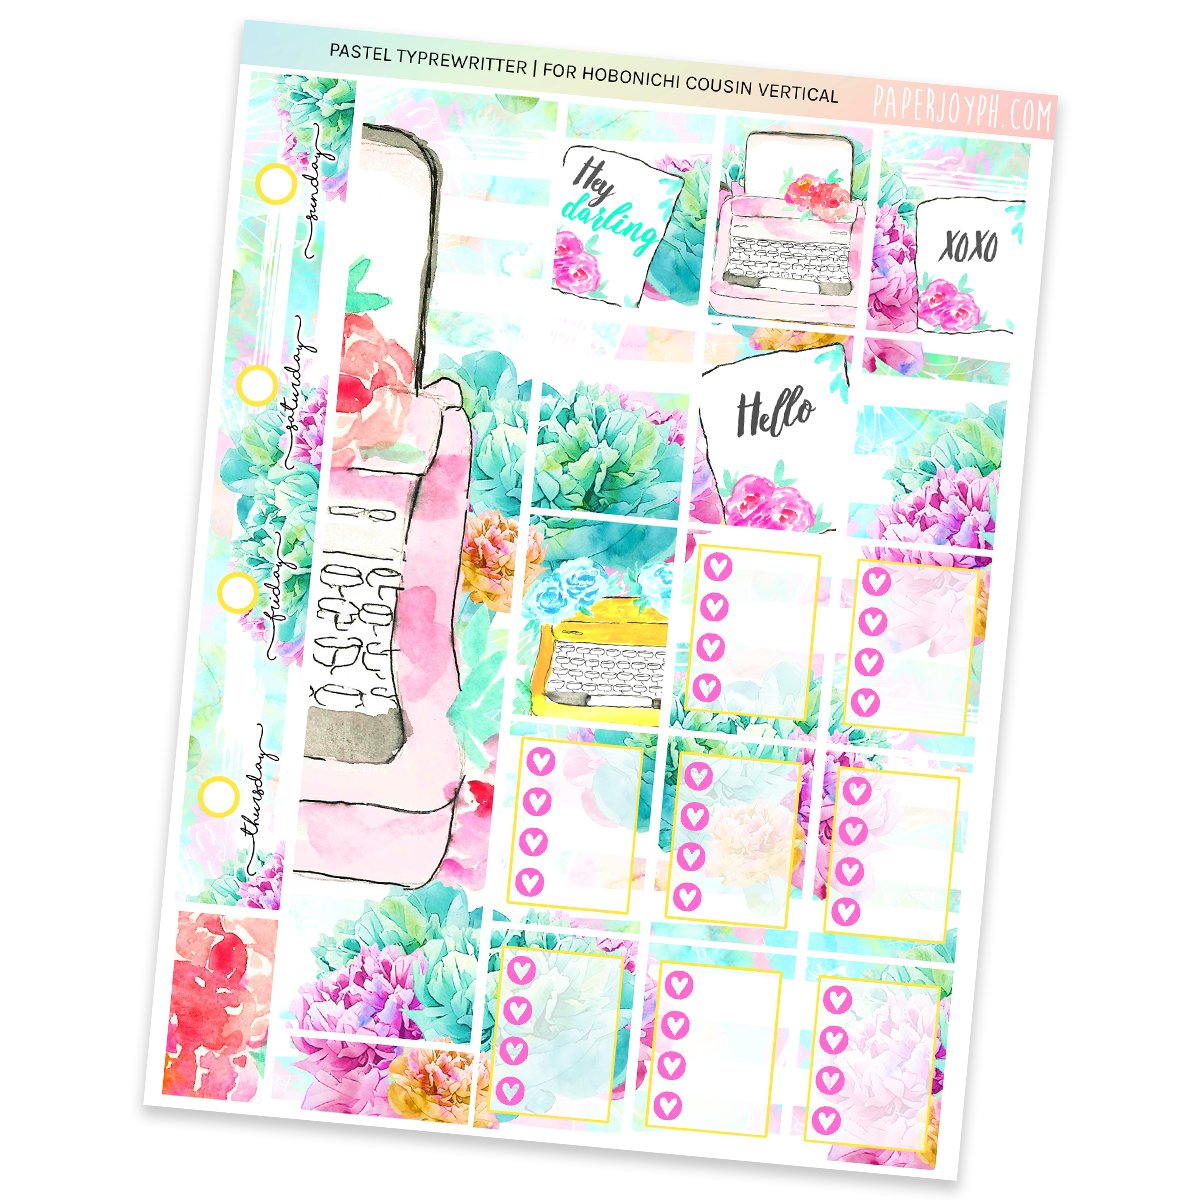 HOBONICHI COUSIN | VERTICAL STICKER KIT | PASTEL TYPEWRITER